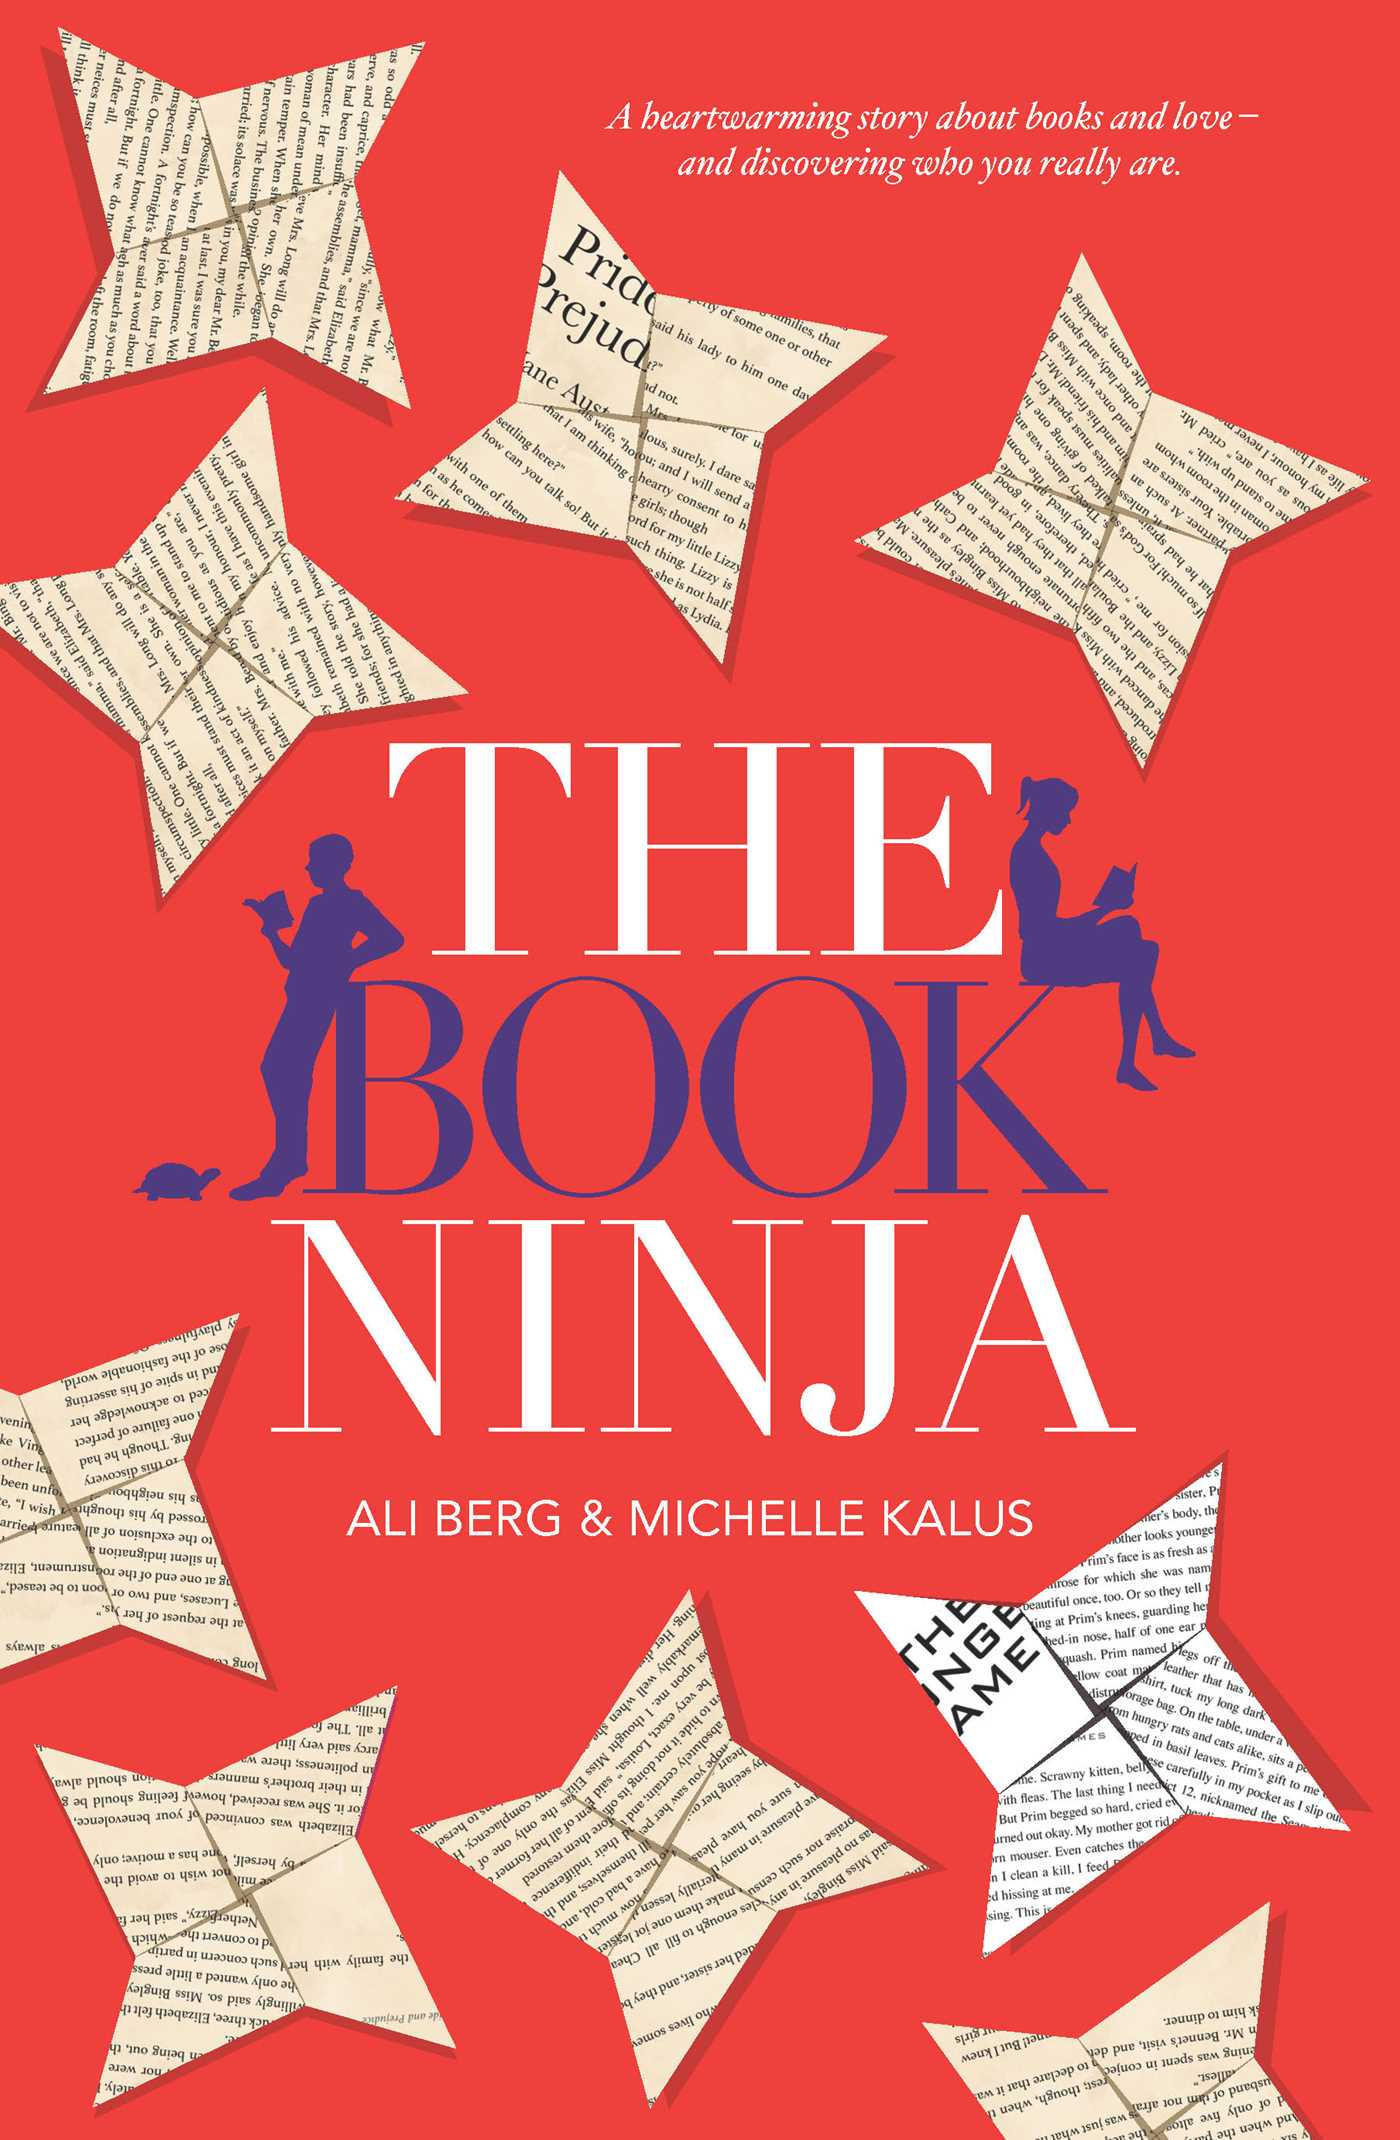 The Book Ninja - Sometimes love means having to broaden your literary horizons.Frankie Rose is desperate for love. Or a relationship. Or just a date with a semi-normal person will do. It's not that she hasn't tried. She's the queen of dating. But enough is enough.Inspired by her job at The Little Brunswick Street Bookshop, Frankie decides to take fate into her own hands and embarks on the ultimate love experiment. Her plan? Plant her favourite books on trains inscribed with her contact details in a bid to lure the sophisticated, charming and well-read man of her dreams.Enter Sunny, and one spontaneous kiss later, Frankie begins to fall for him. But there's just one problem – Frankie is strictly a classics kind of gal and Sunny is really into Young Adult.A clever, funny and wryly observed story about finding love and discovering yourself in the process. Available around the world in all good bookstores.